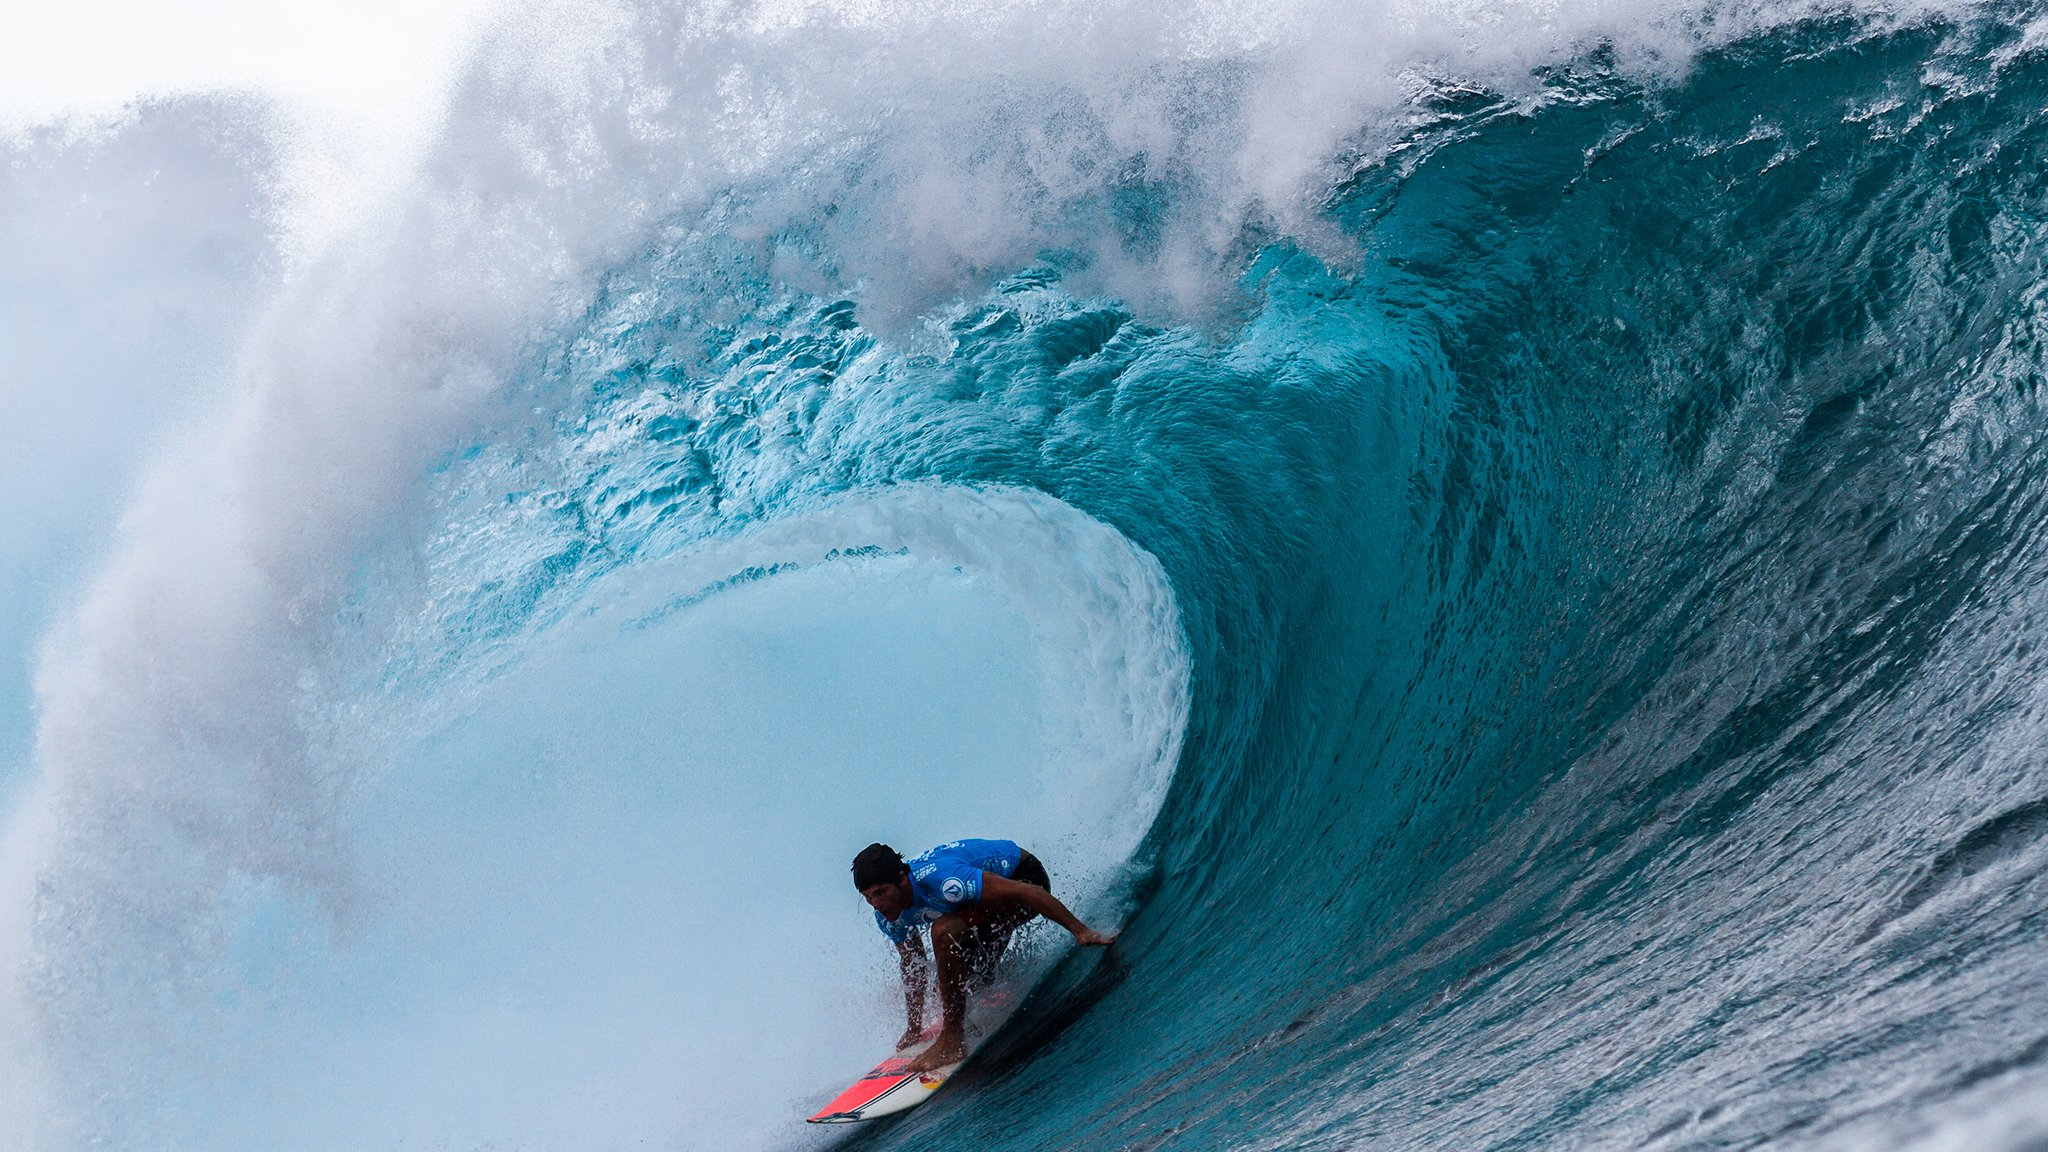 Extreme Surfing Wallpaper: Surfing Surf Ocean Sea Waves Extreme Surfer (67) Wallpaper